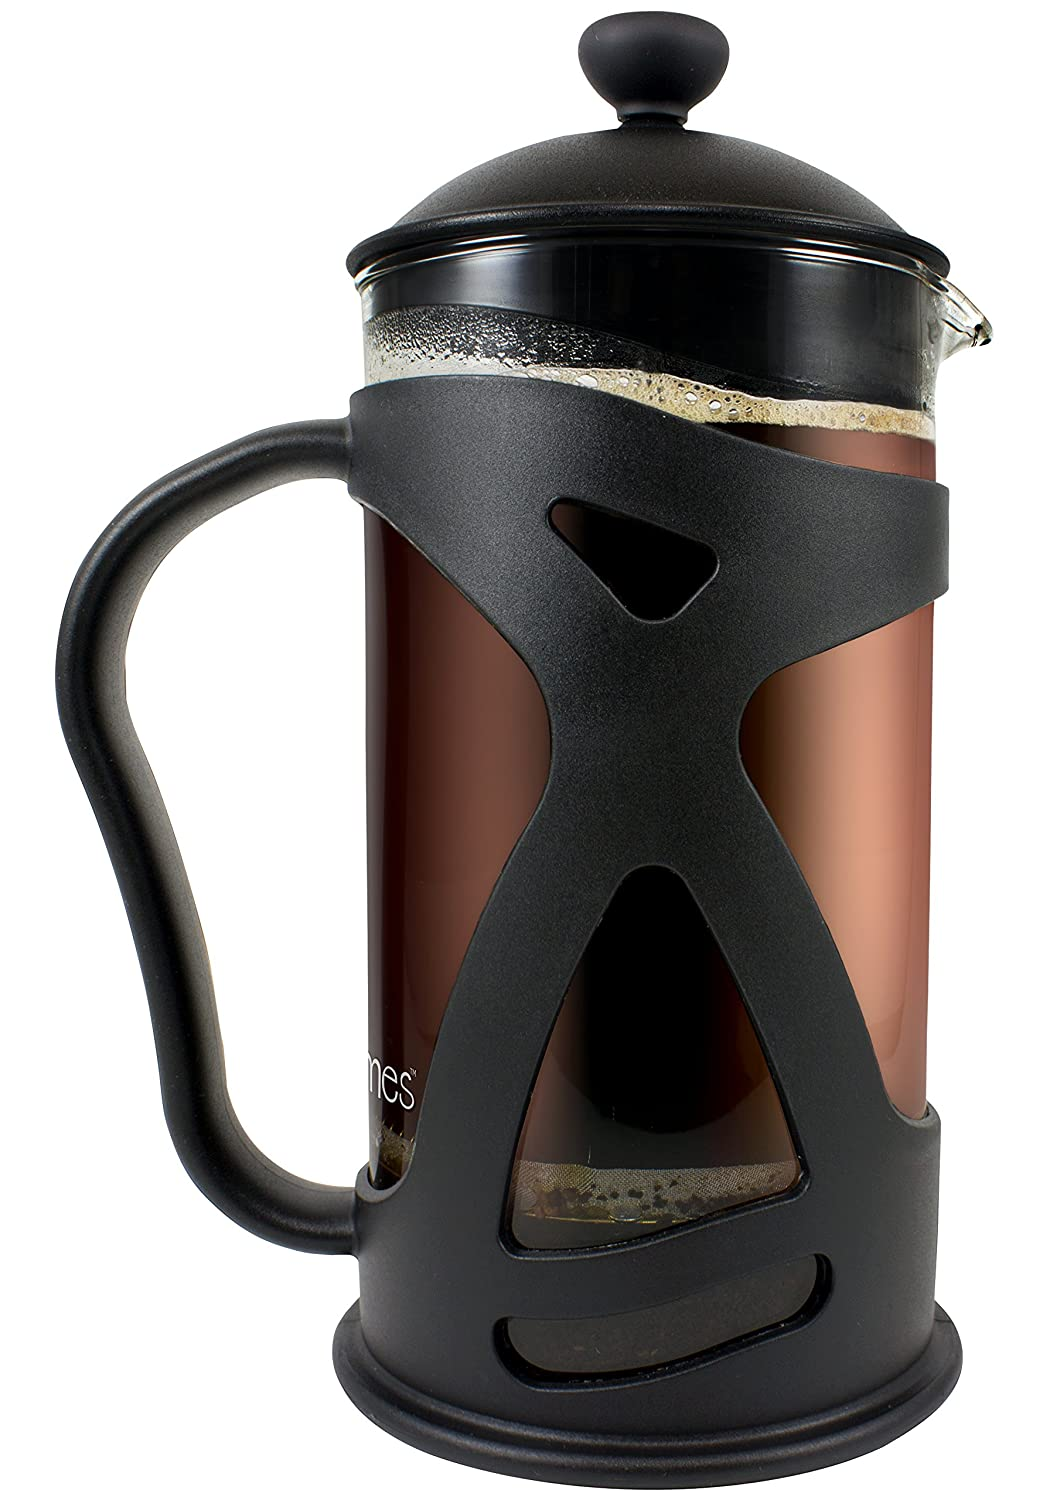 The KONA 34 Oz French Pot is the best coffee press within this price range.